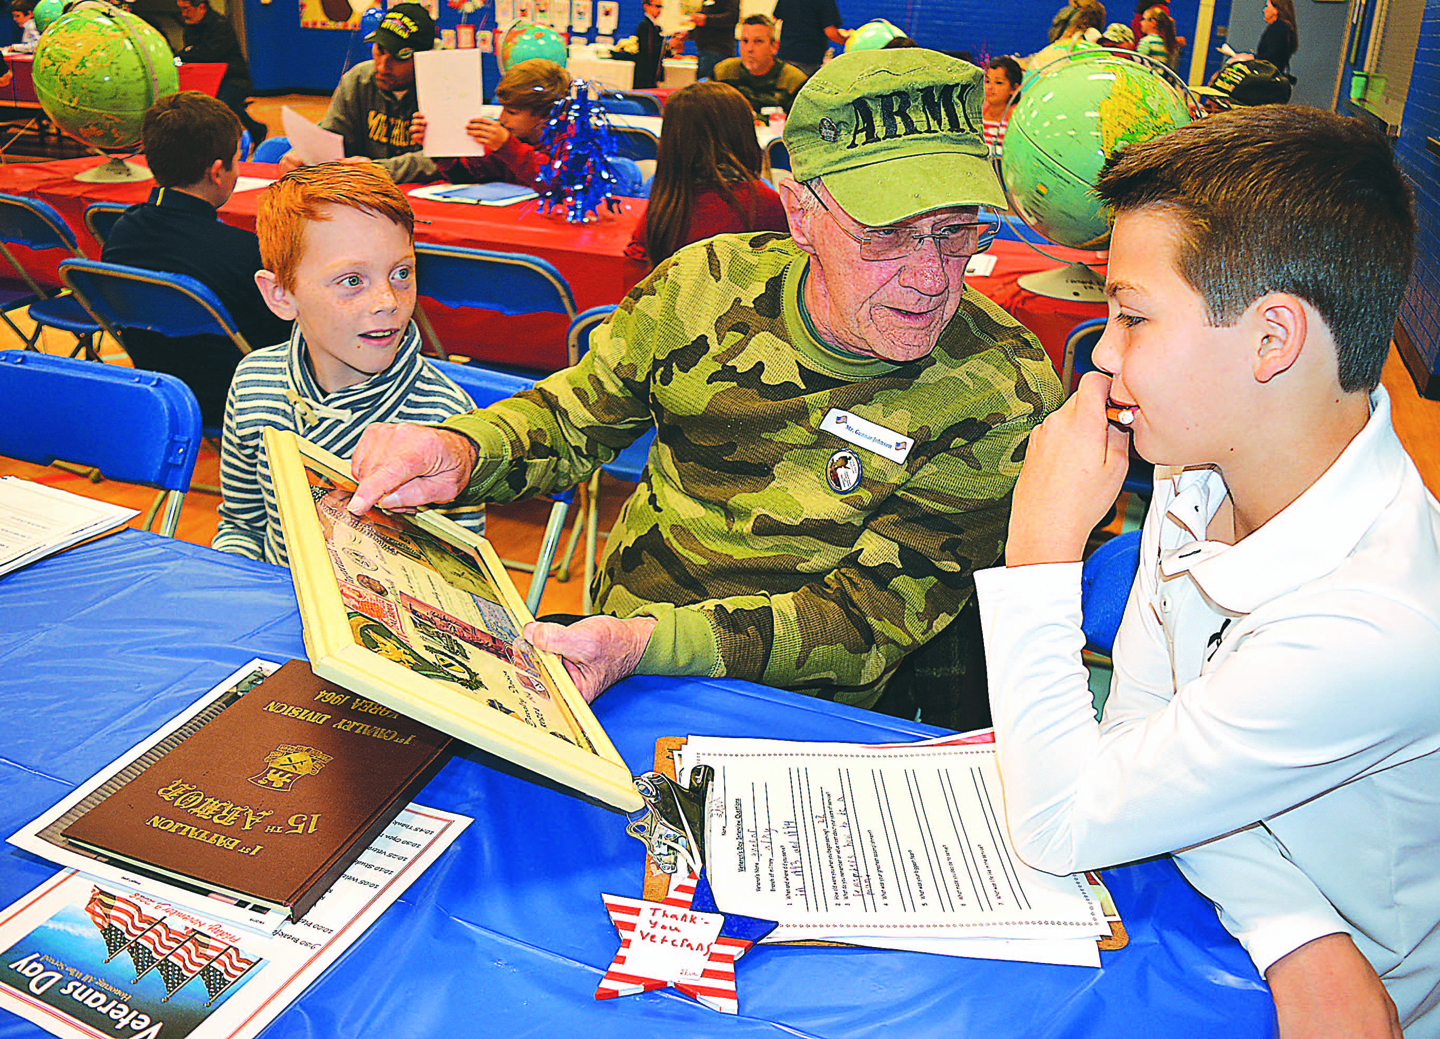 Gunnar Johnson (center), a U.S. Army veteran who served from 1963-64, shares his military experiences with fifth-graders Gavin Lewis (left) and Finn McDevitt. Photo by C.J. Carnacchio.